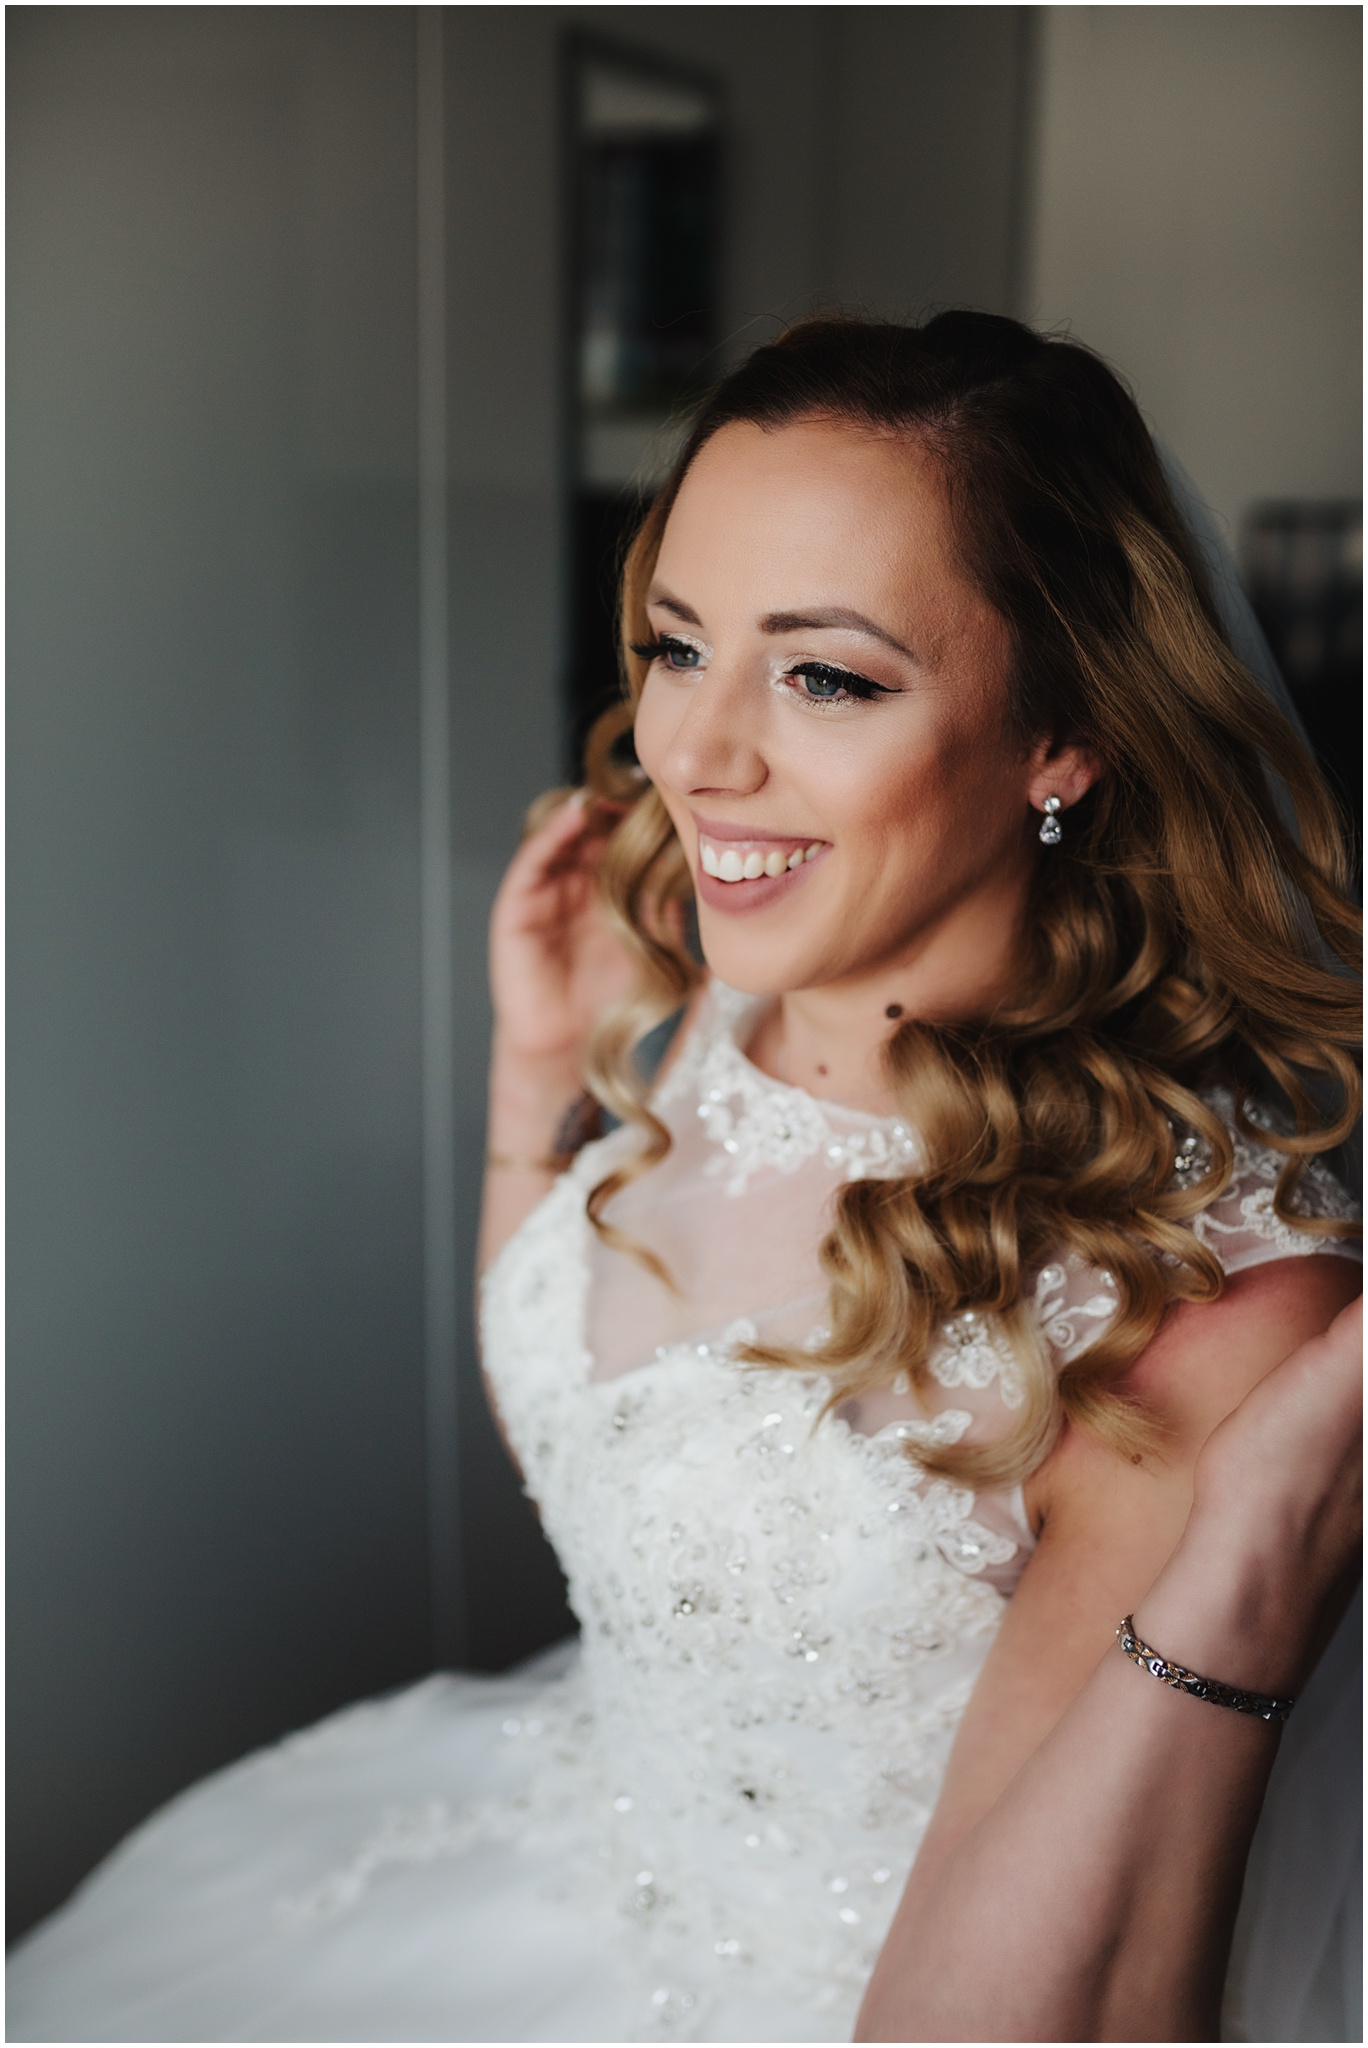 The Rochford Hotel wedding photography - Portrait of the bride in dress